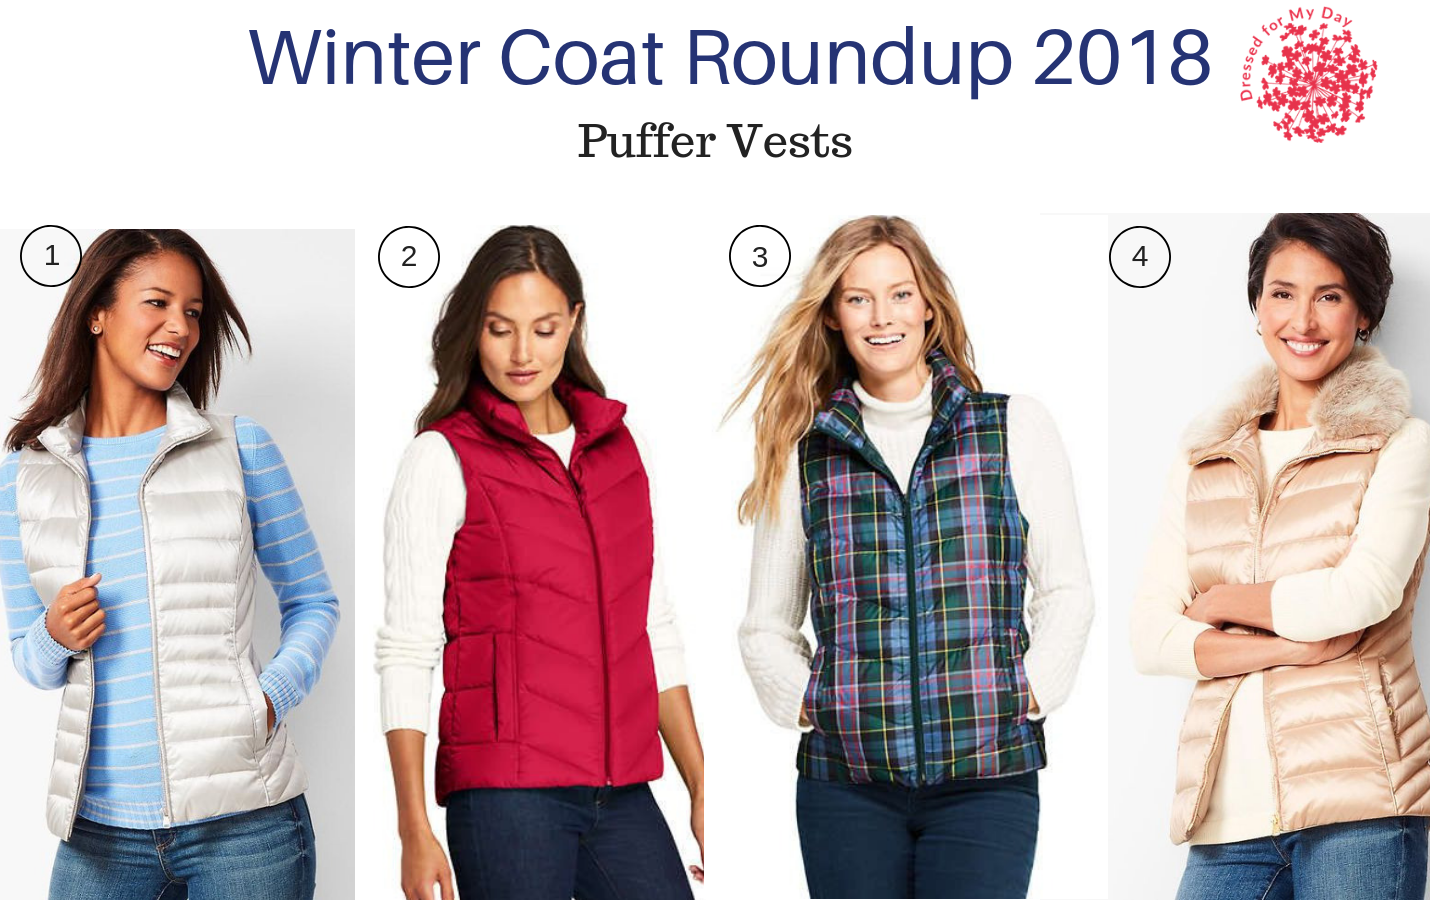 Winter Coat Roundup 2018 Puffer Vests